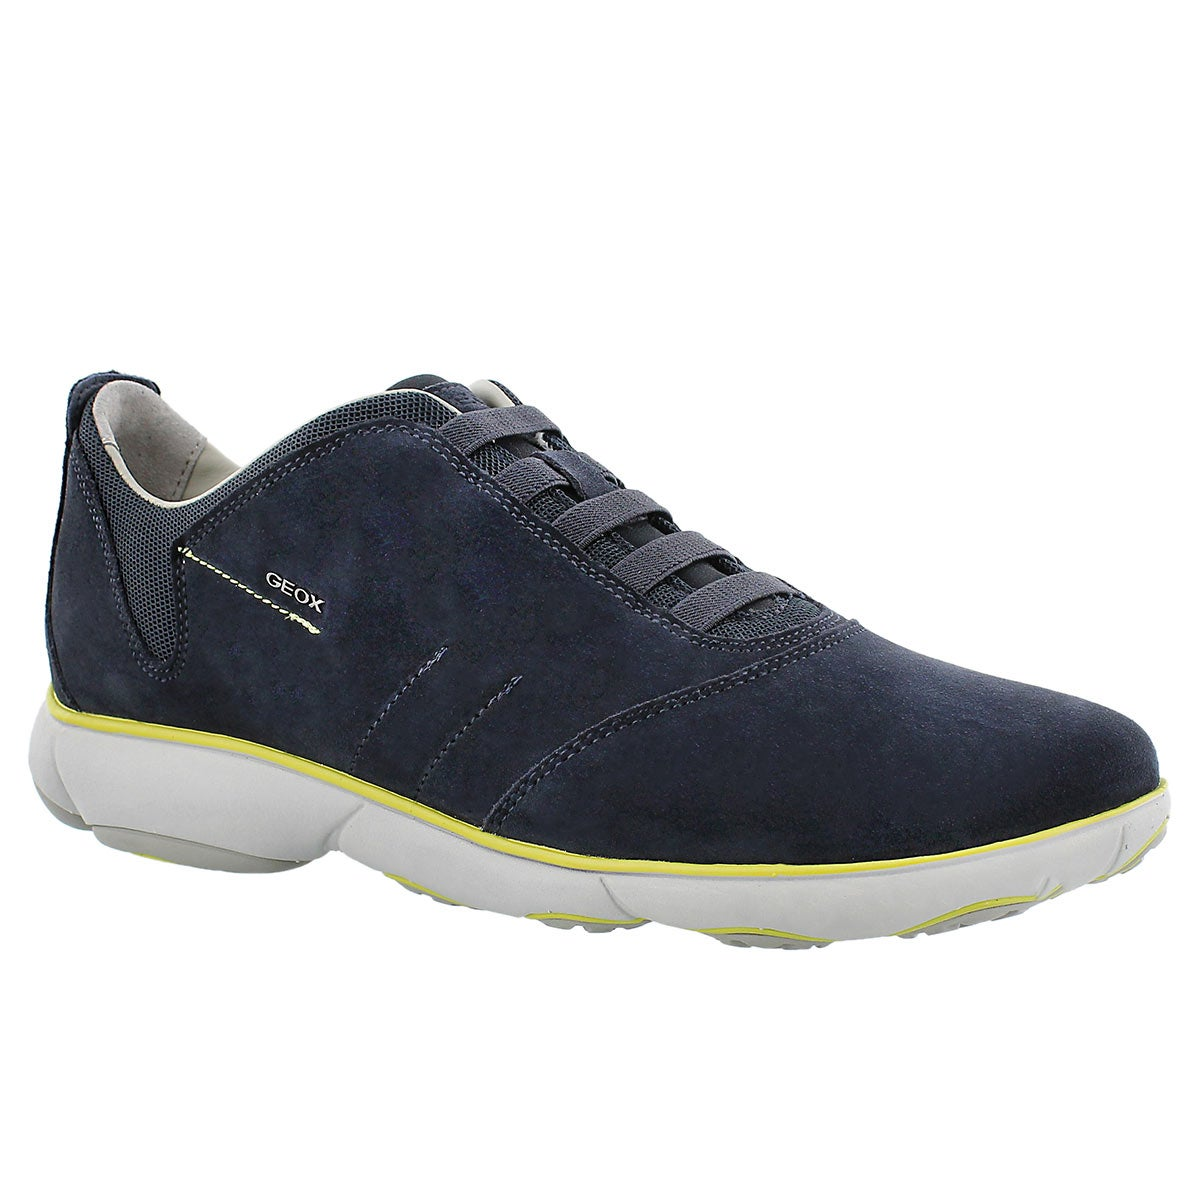 Men's NEBULA  navy lace up running shoes